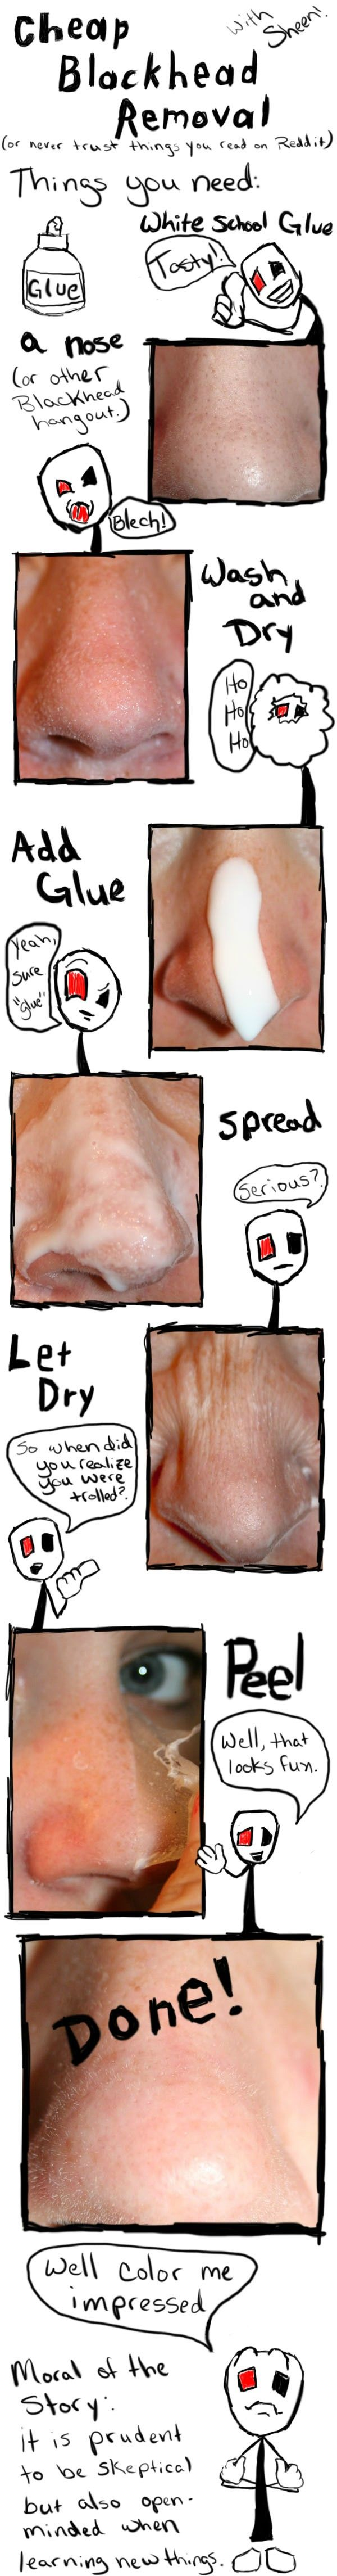 Cheap Blackhead Removal (or never trust things you read on Reddit)